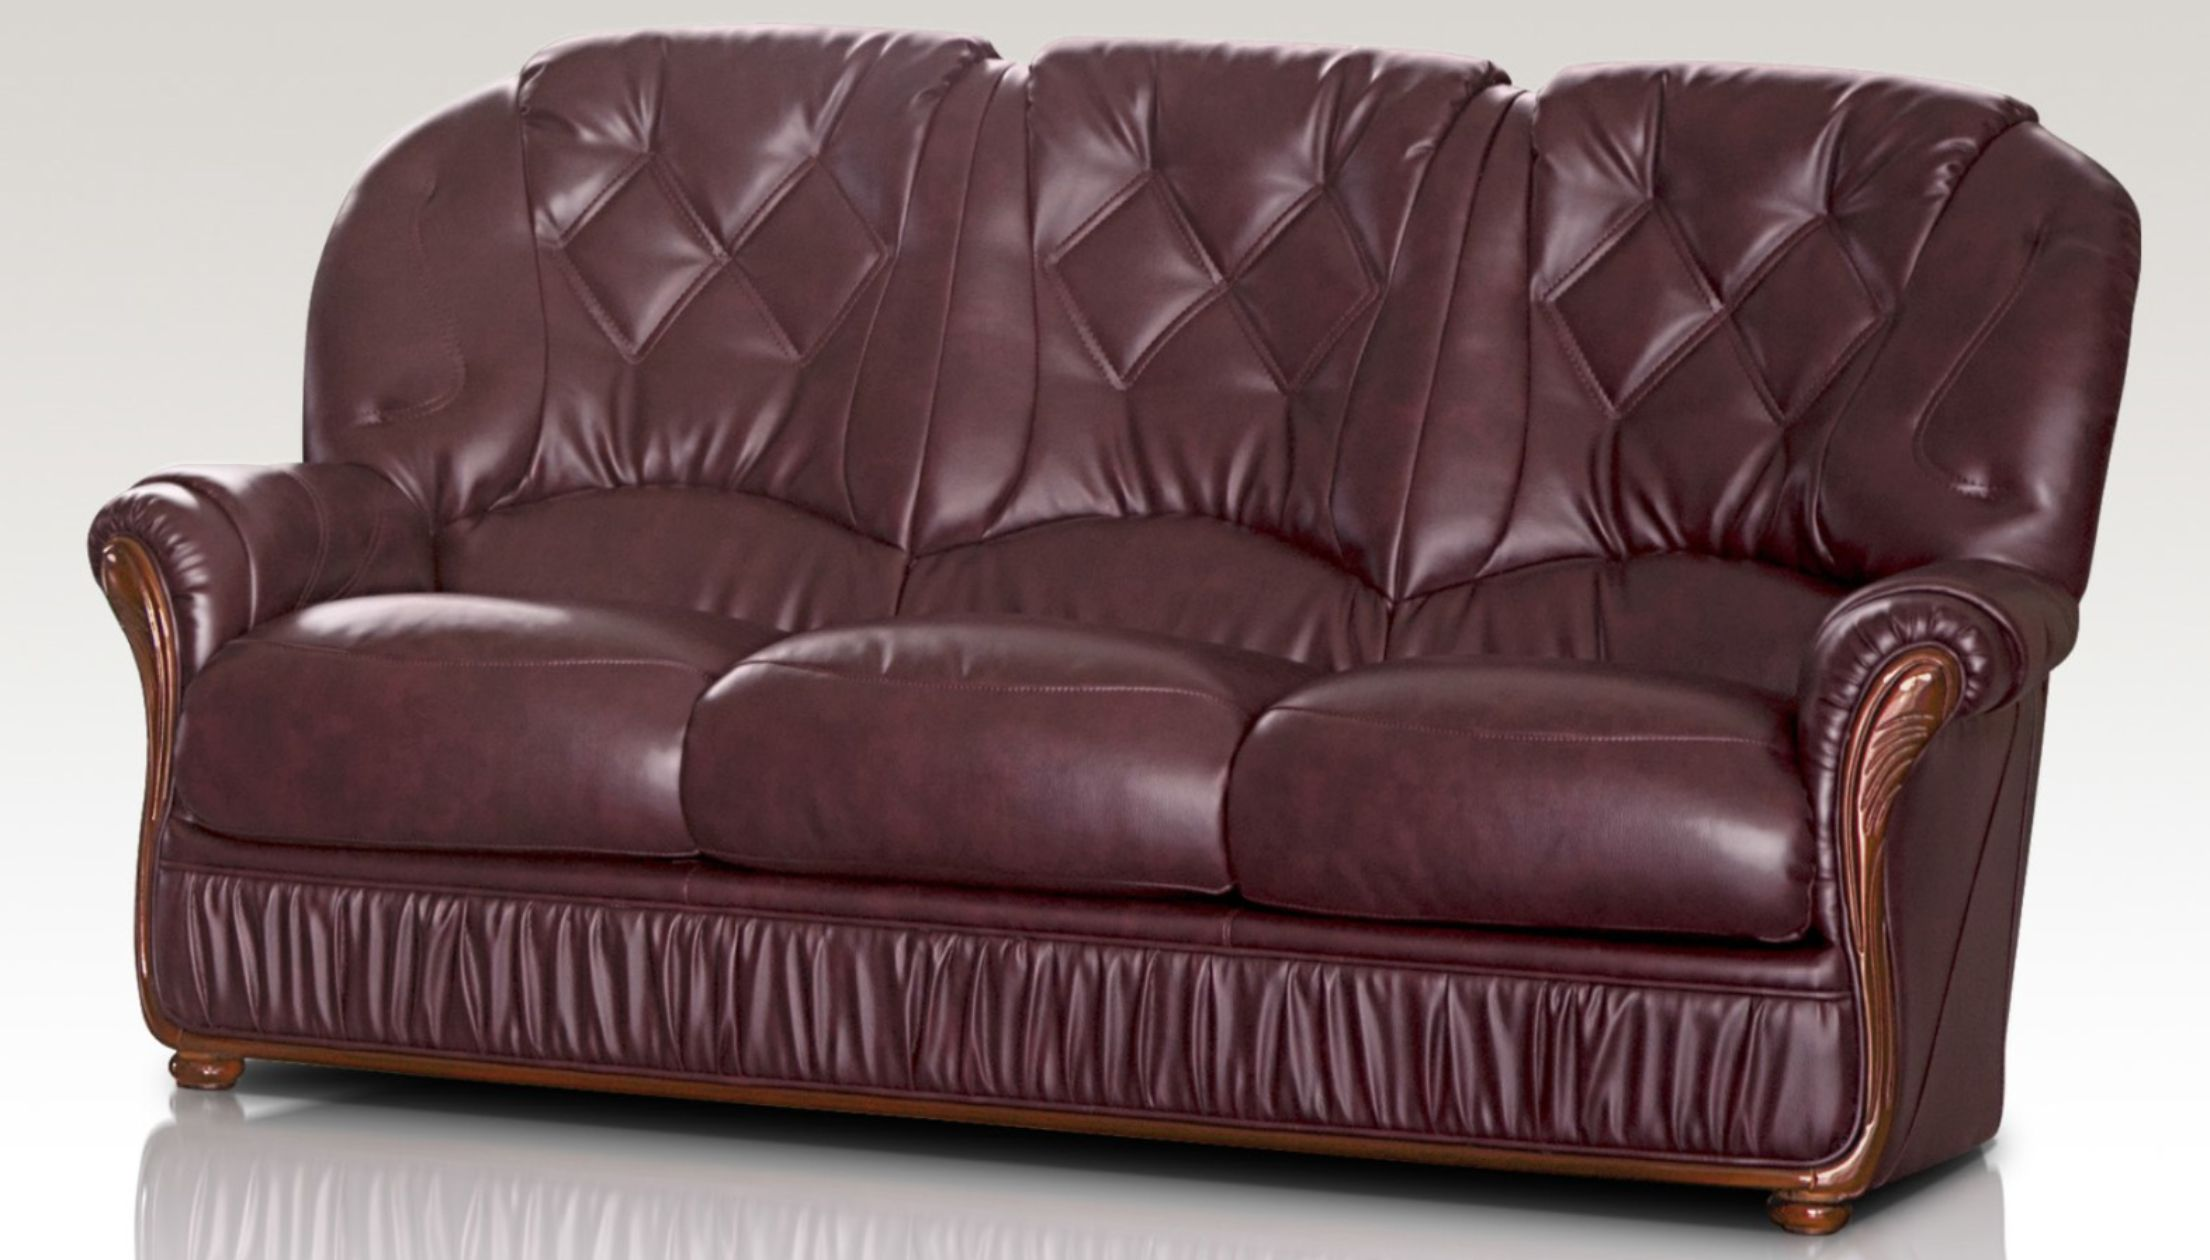 Alabama genuine italian leather 3 seater sofa settee burgundy for Leather sofa 7 seater